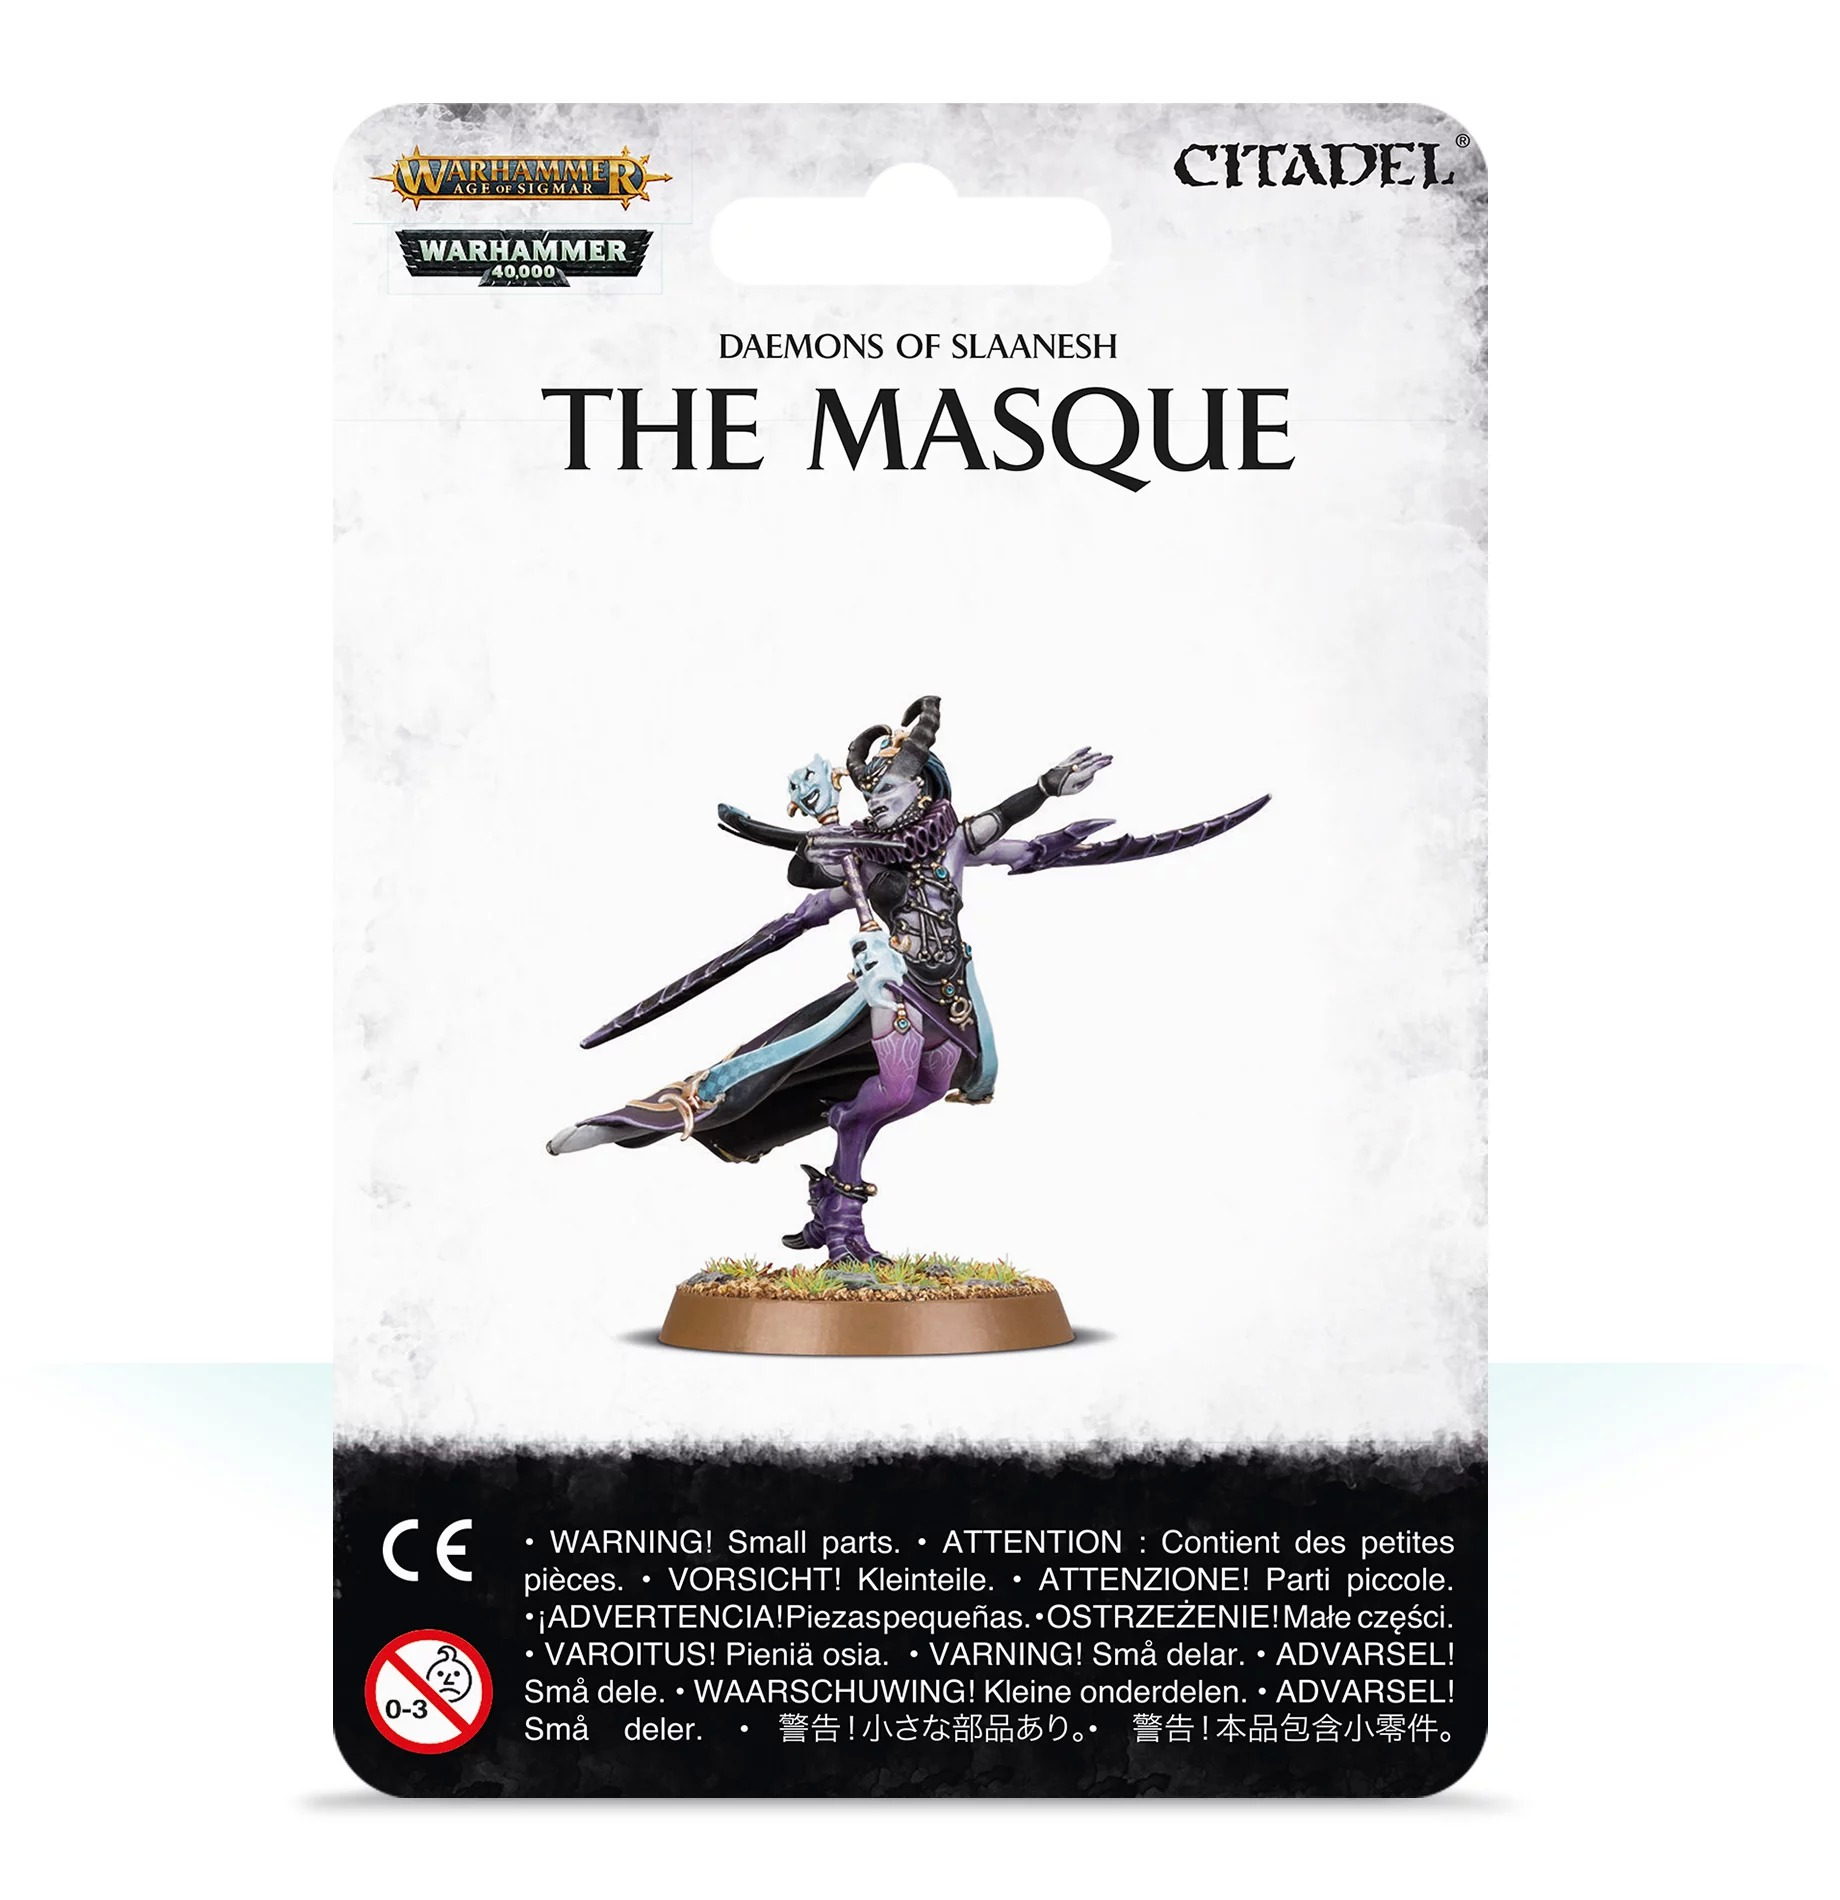 Warhammer Age of Sigmar: Hedonites of Slaanesh: The Masque